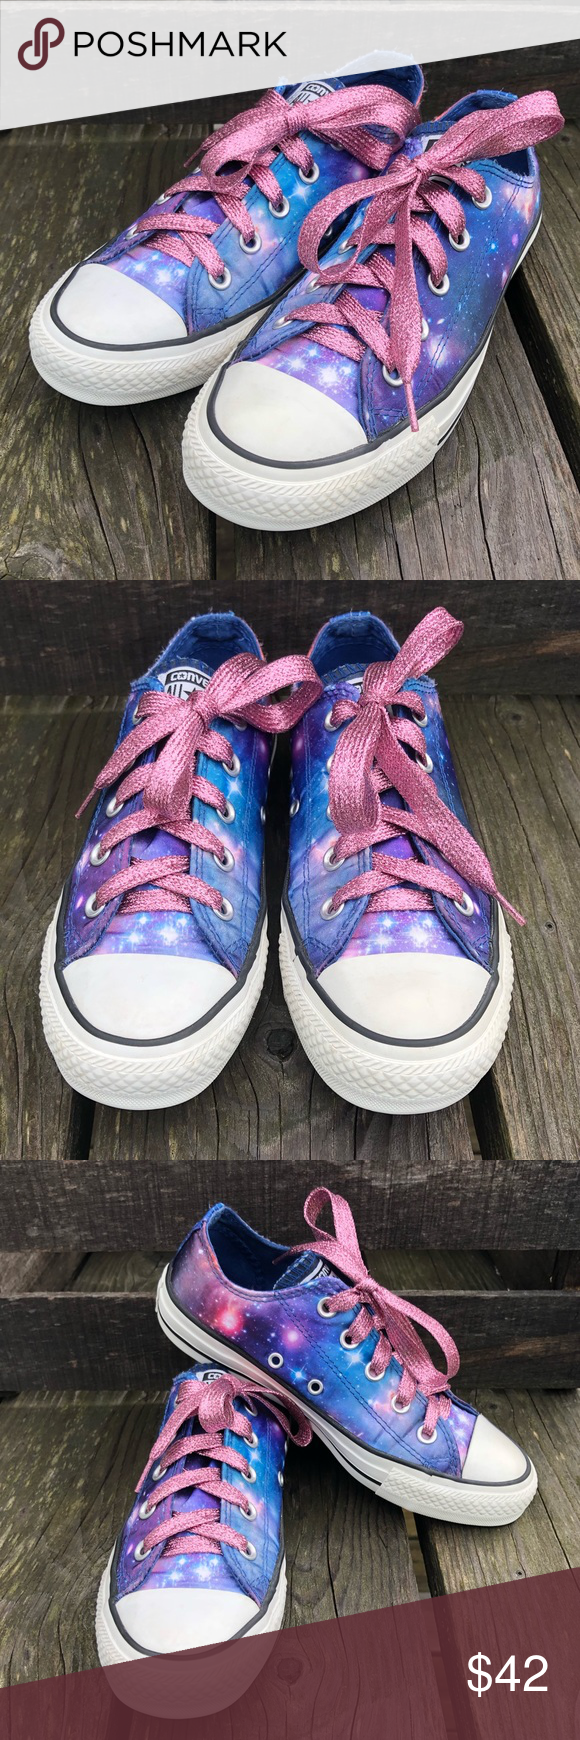 220329b737 Galaxy Converse Pink w Glitter Laces! EUC! Favorite galaxy Converse  All-Star Converse with new pink glitter laces a touch of flair! Size  women s 6 kids size ...